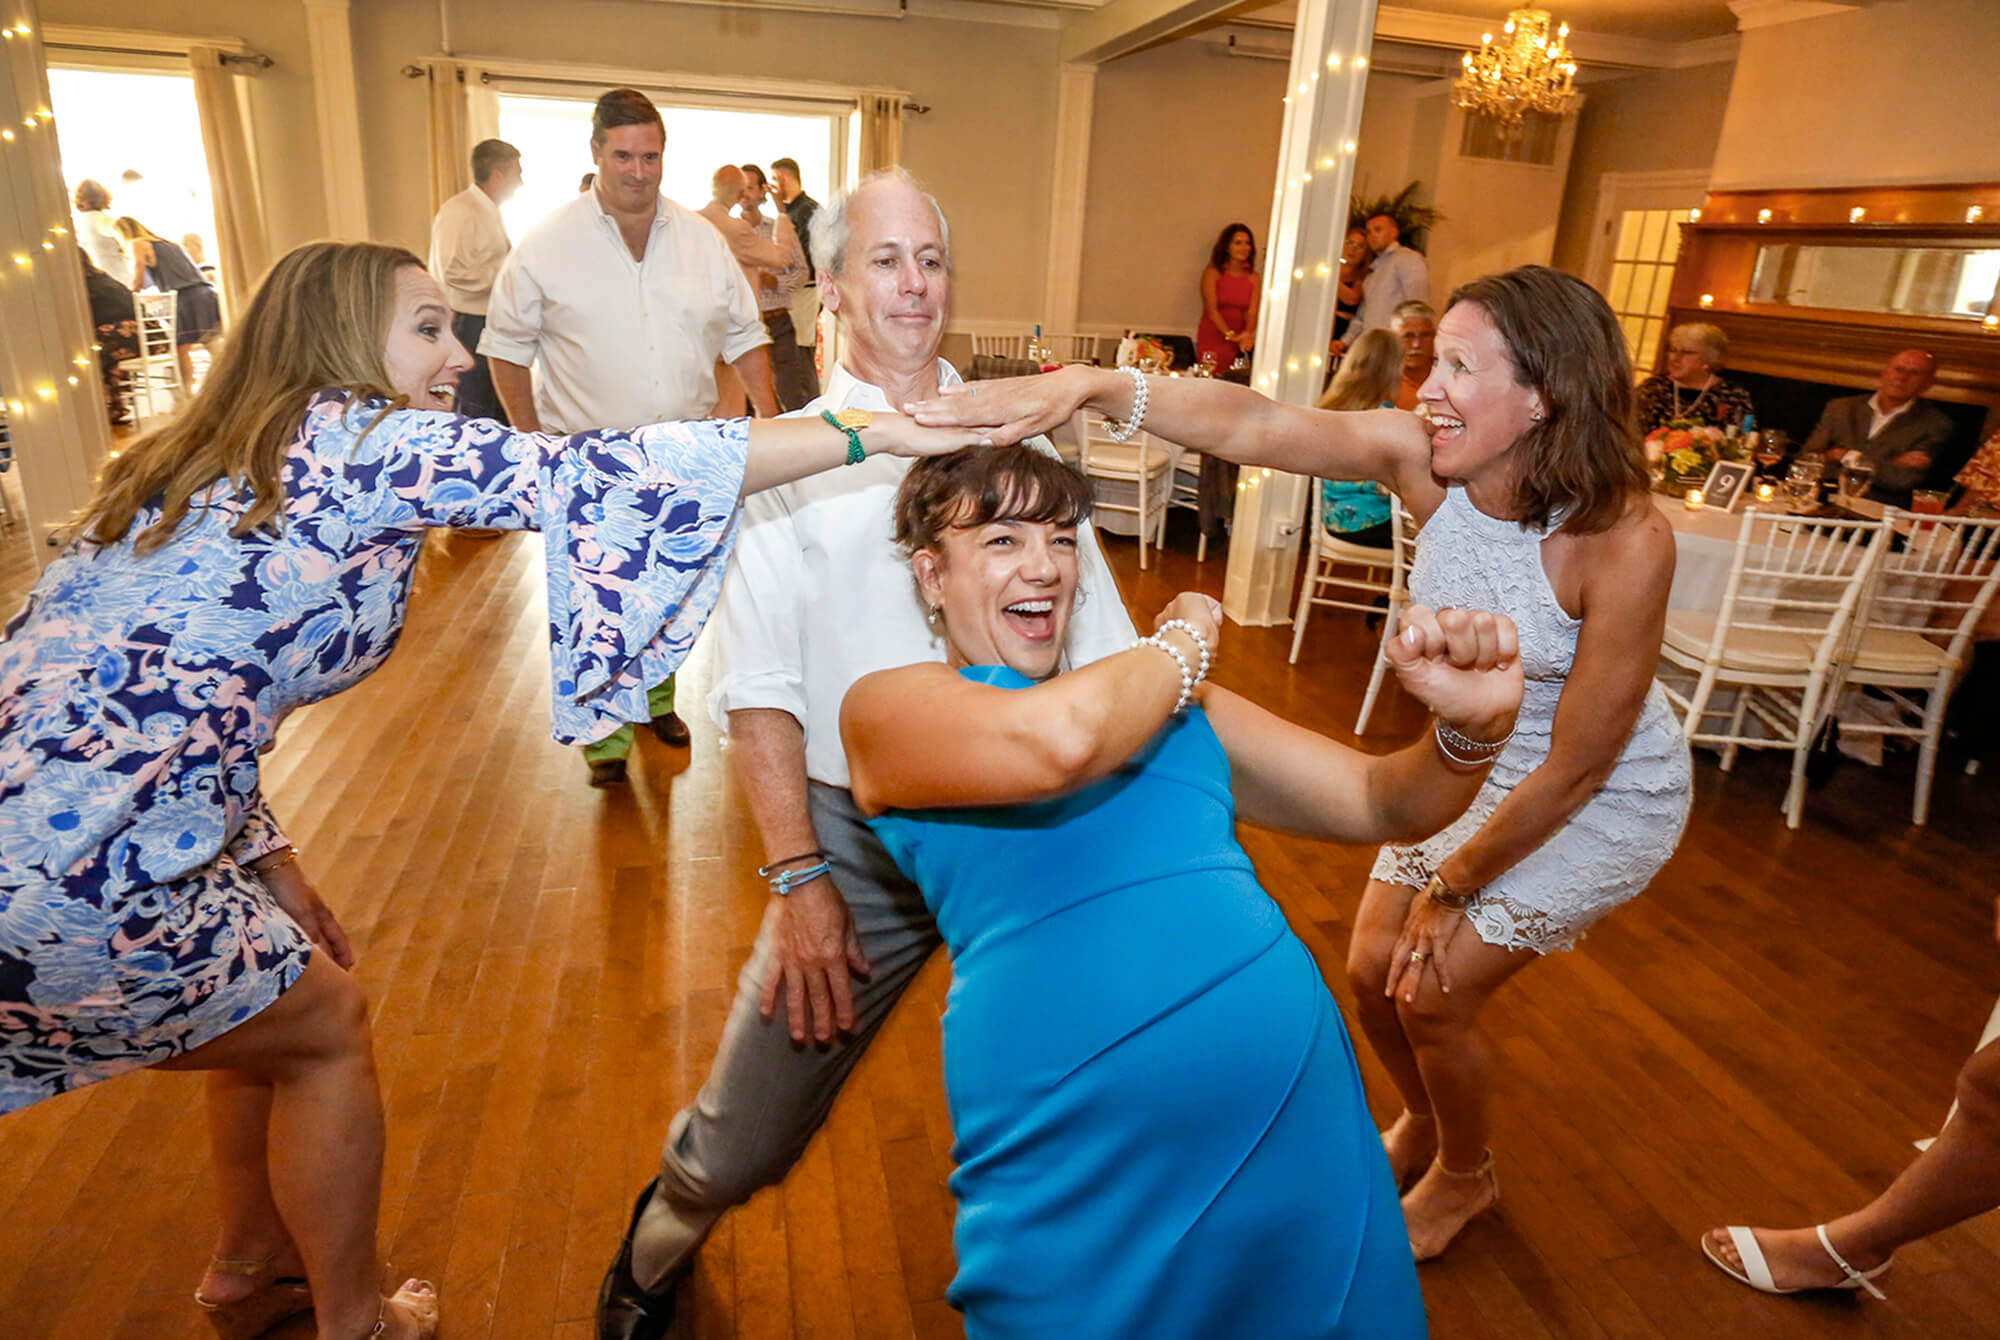 Wedding photography of a woman doing the limbo during a wedding reception in Maine